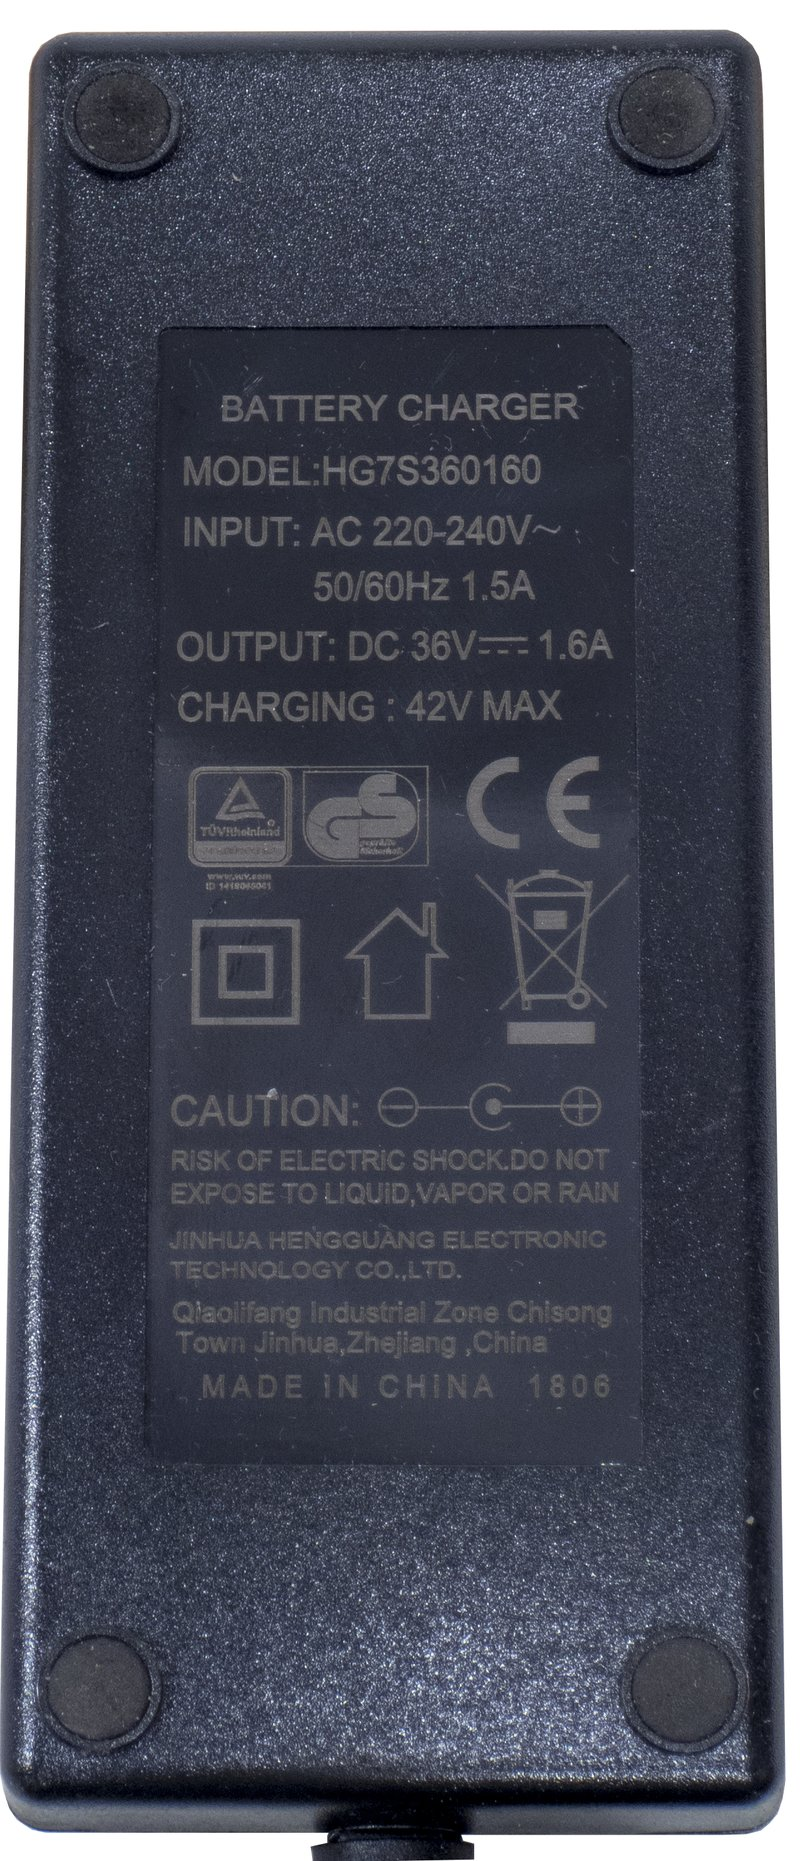 PC.BATTERBE.102 - BATTERY CHARGER FOR ELECTRIC ASSISTED BIKES E2000, E3000, E3100, E3500, E3600, E3700, E4000, E4400, E4500, E4600, E8000, E8100, E8200